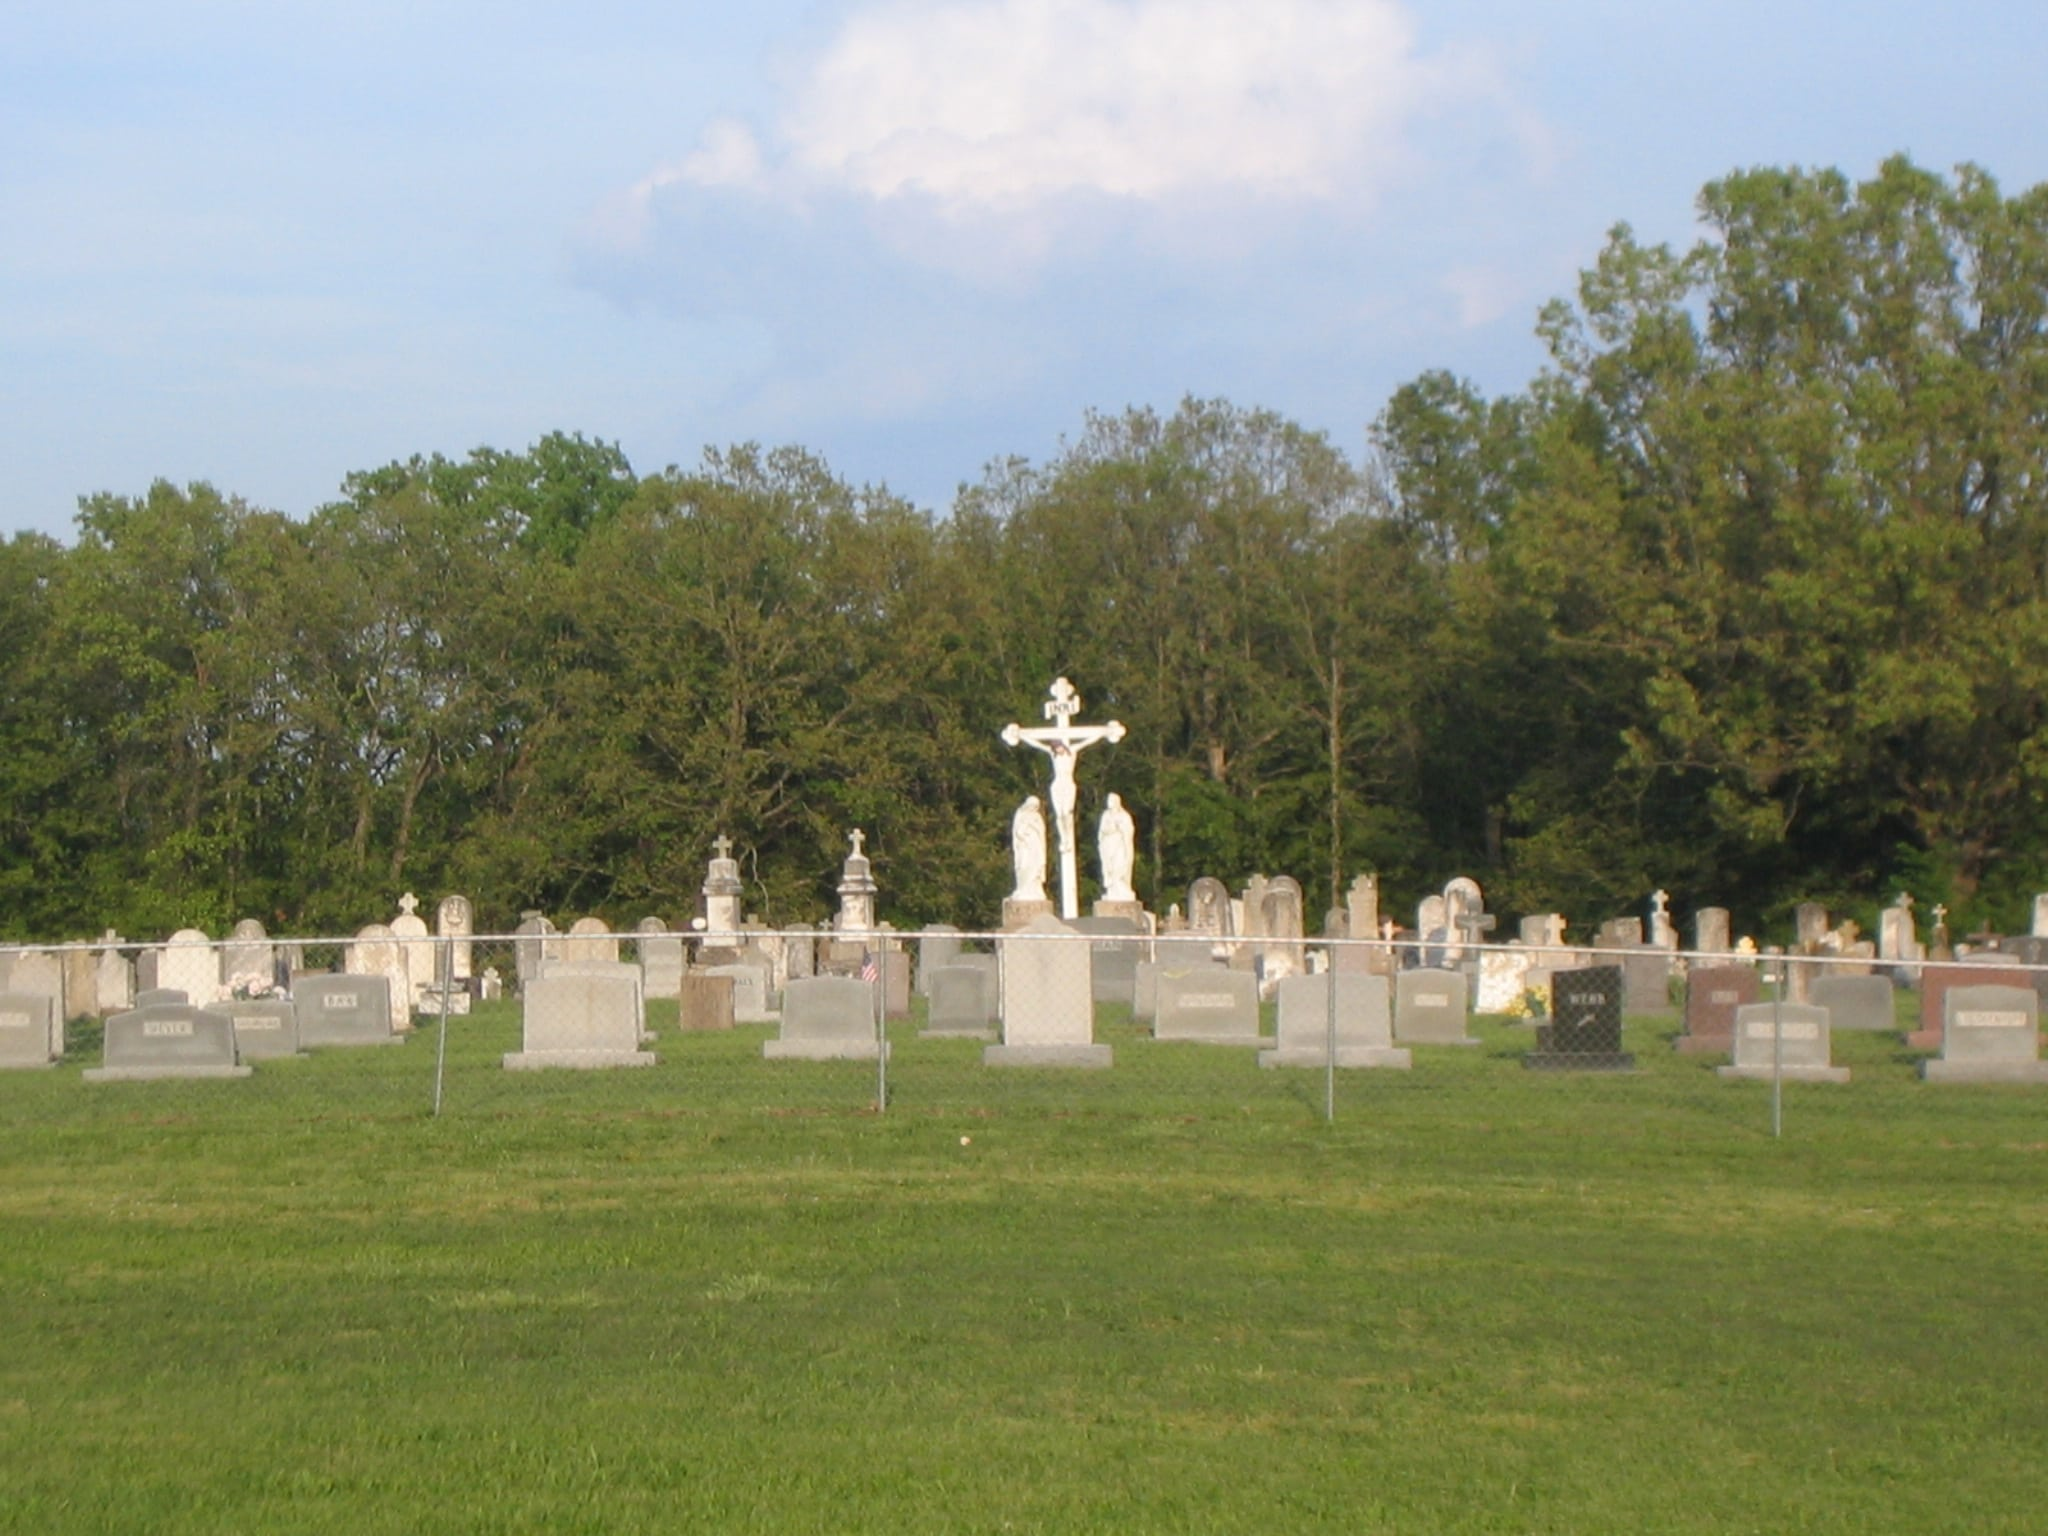 Cemetery of St. Boniface Catholic Church, Koeltztown, MO